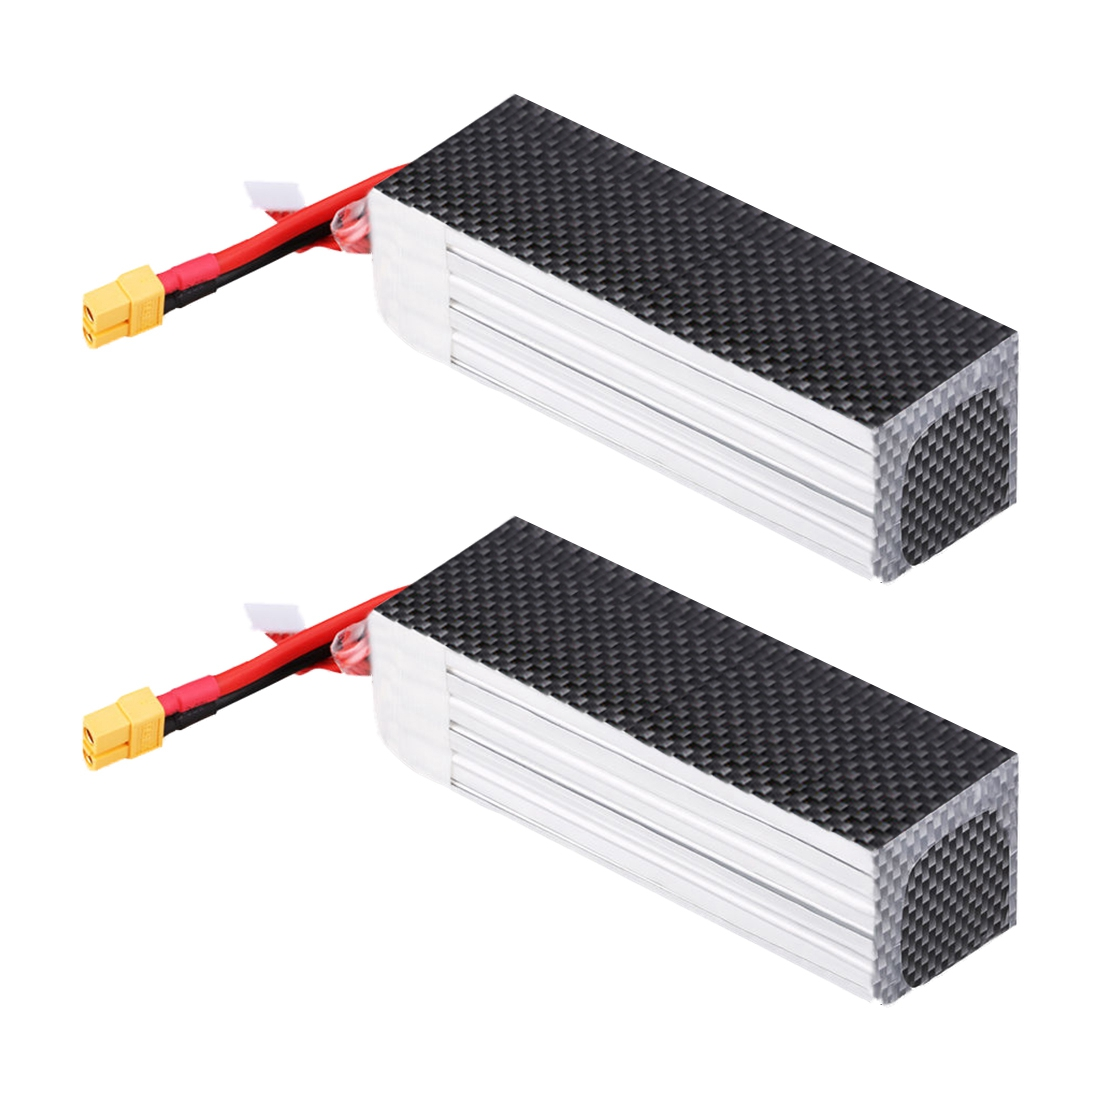 2X 6S 22.2V 3300mAh 45C XT60 Plug Li-Po RC Battery Pack for Helicopter Car Truck fh100 compatible 7 2v 3300mah battery pack for sony sr300e sr200e sr82e more